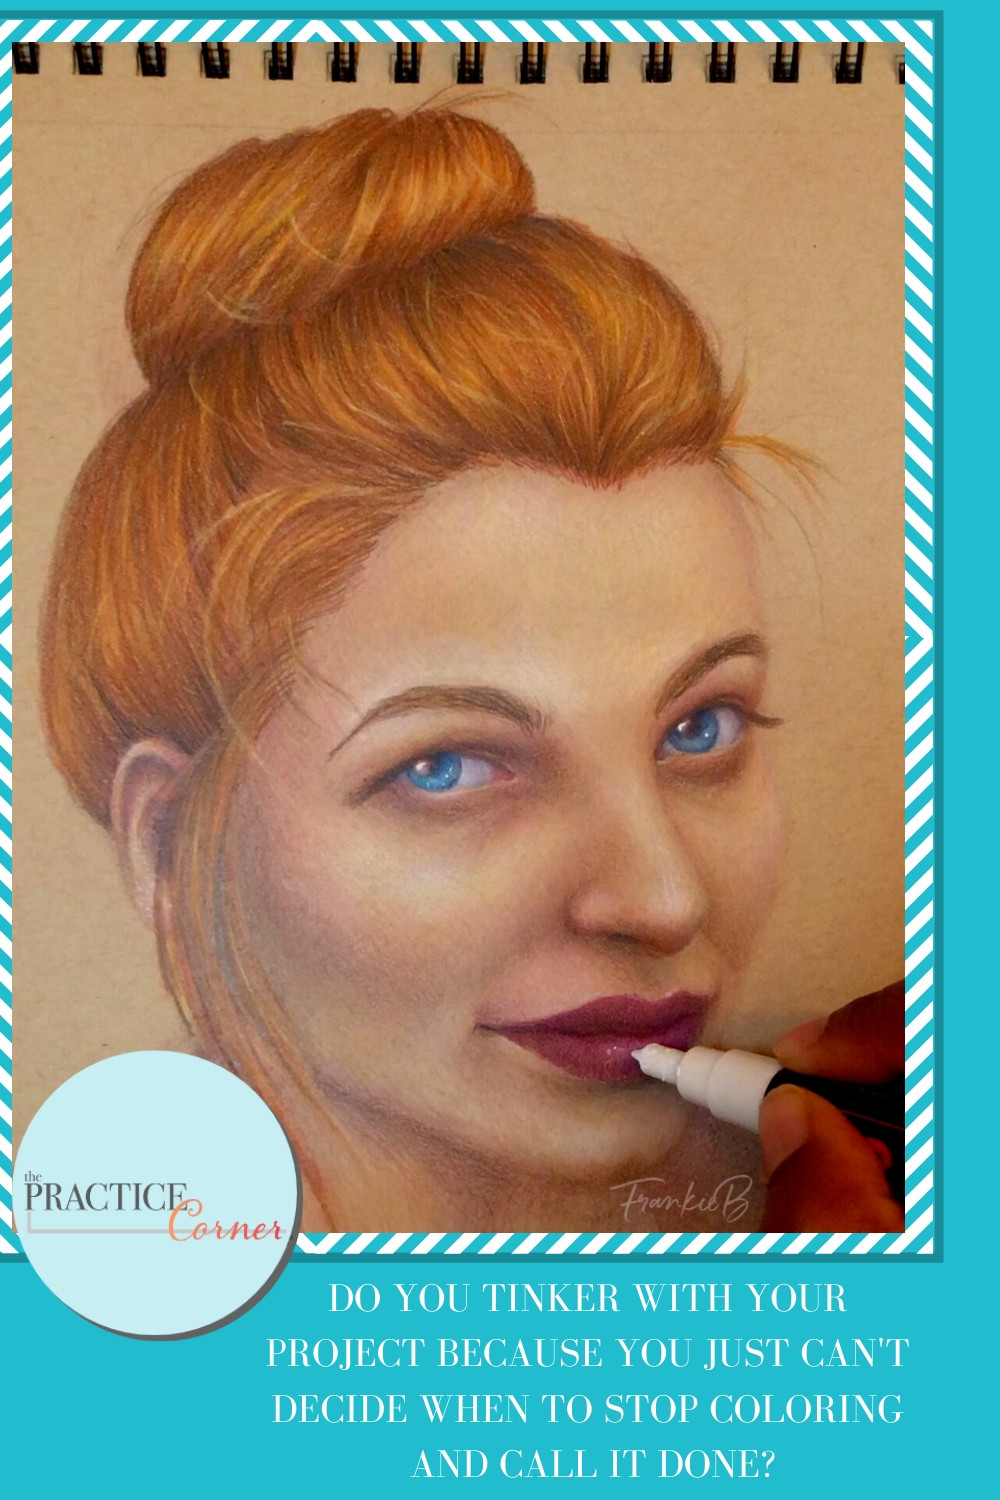 How to determine when to stop coloring | Tips to know when your coloring project is complete | #coloredpencil #coloredpencilpractice #copicmarker #copicmarkerpractice  #thepracticecorner #realisticcoloring